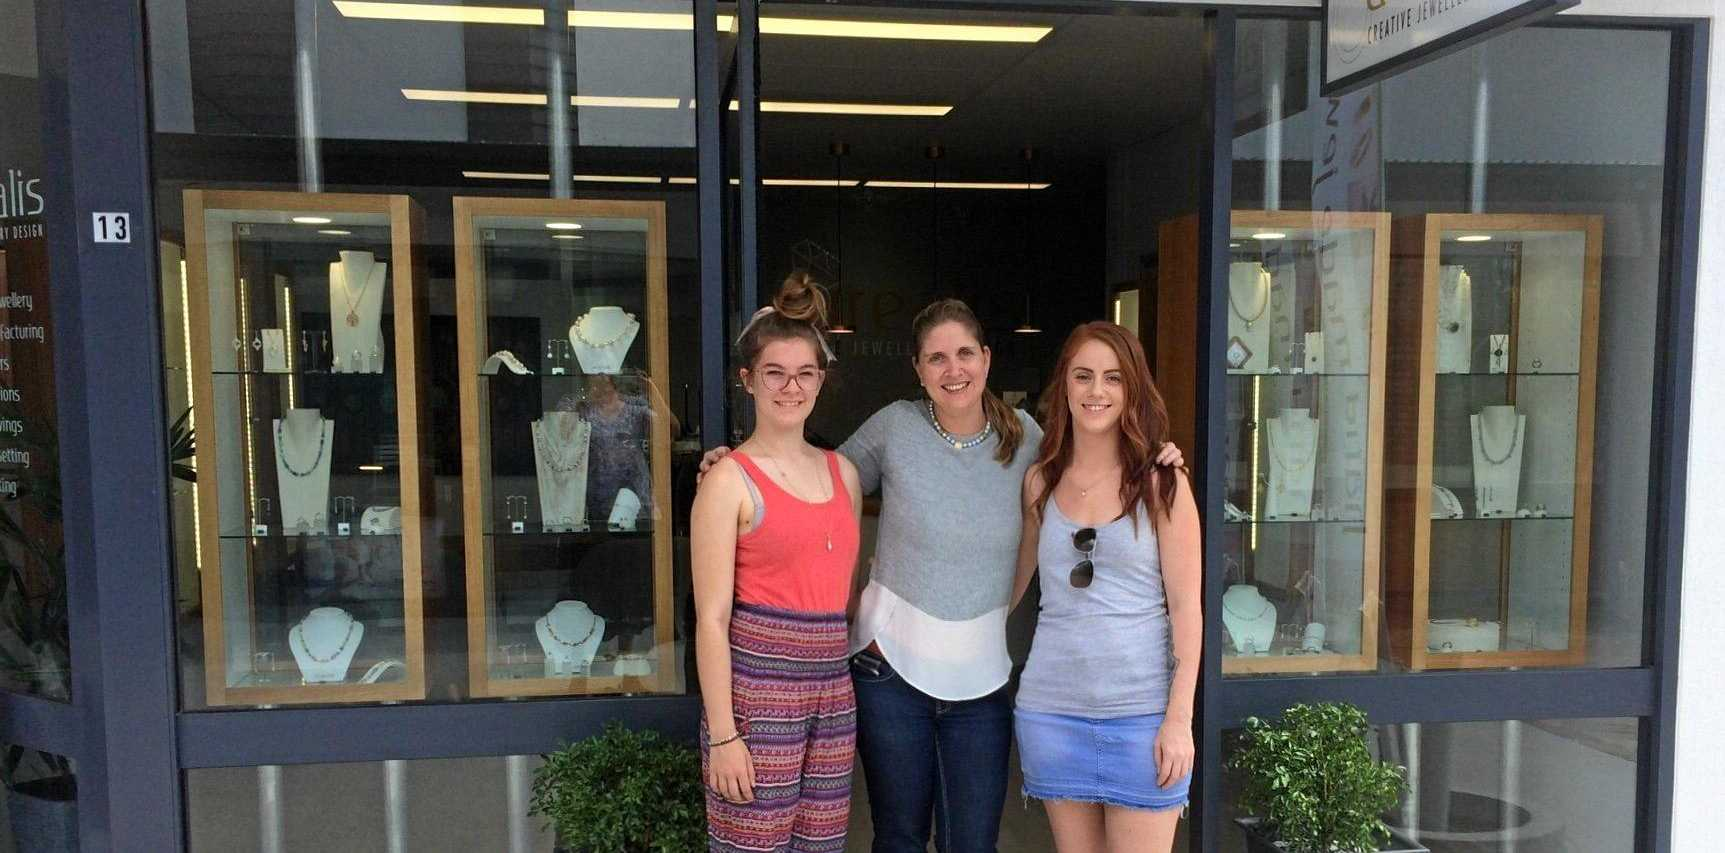 HE-ART: Sonja Scharmann with local apprentices Kloee Kendal and Lily Rogers outside her shop, Aurealis Creative Jewellery Design.